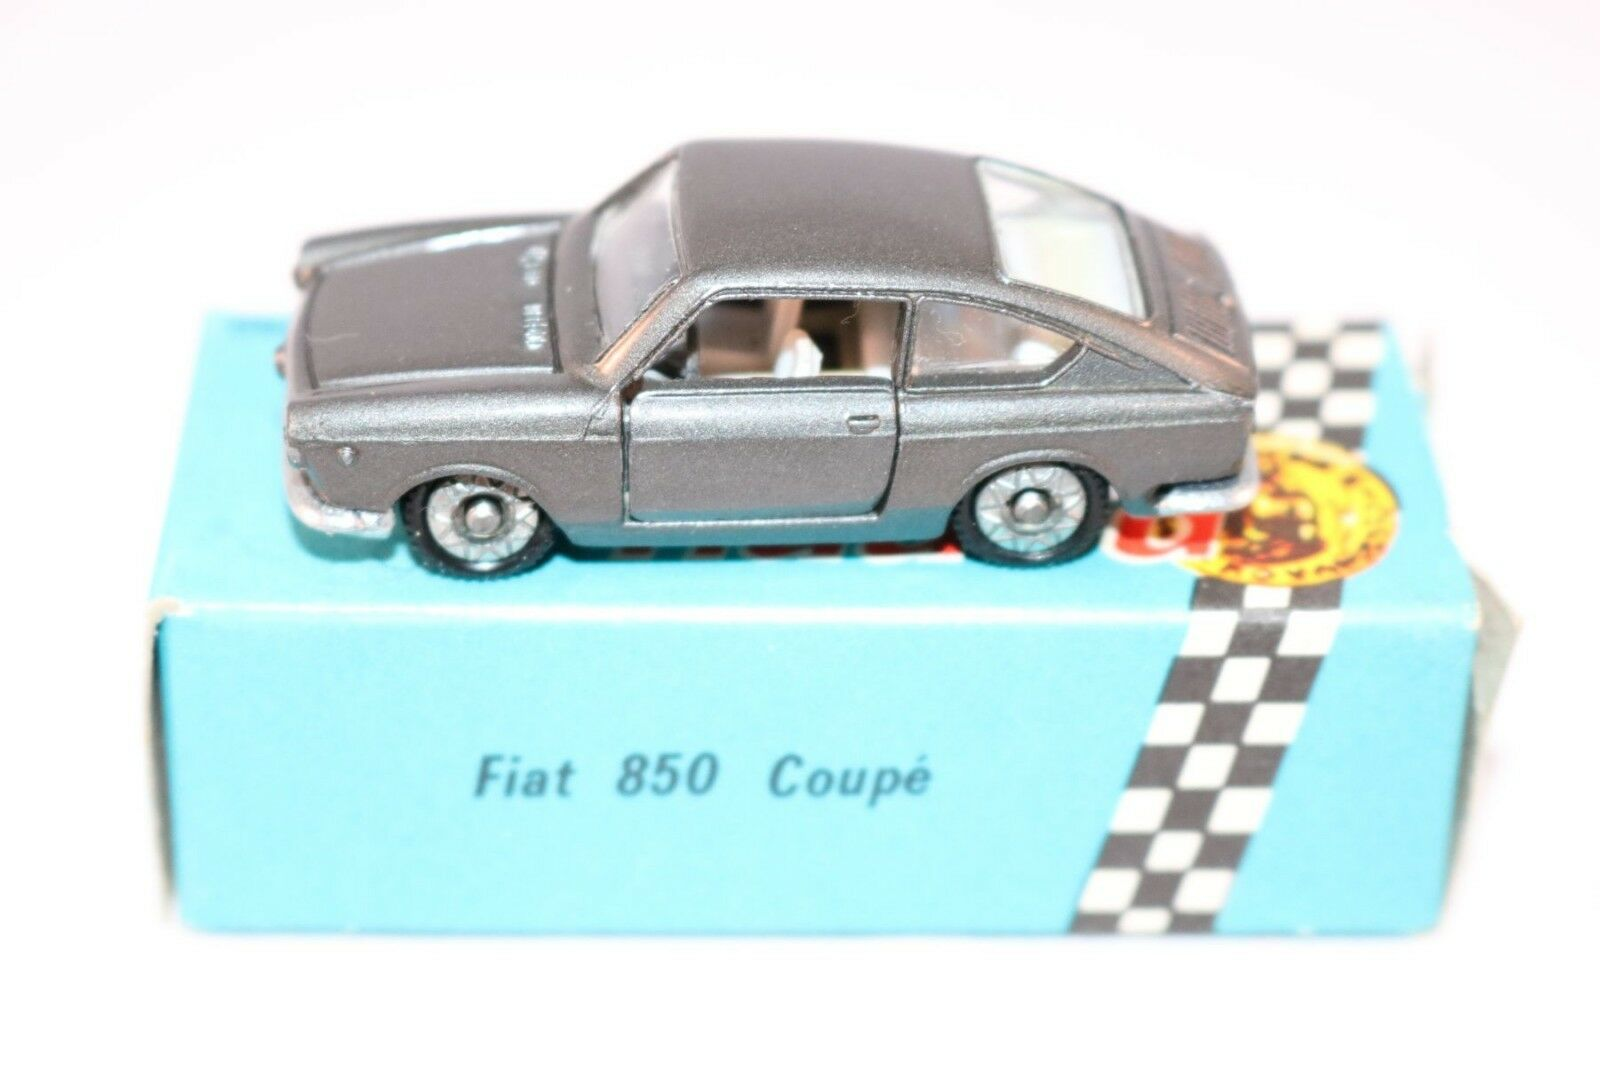 Penny politoys 0 30 30 30 Fiat 850 Coupe perfect mint in box a beauty 9cda8b